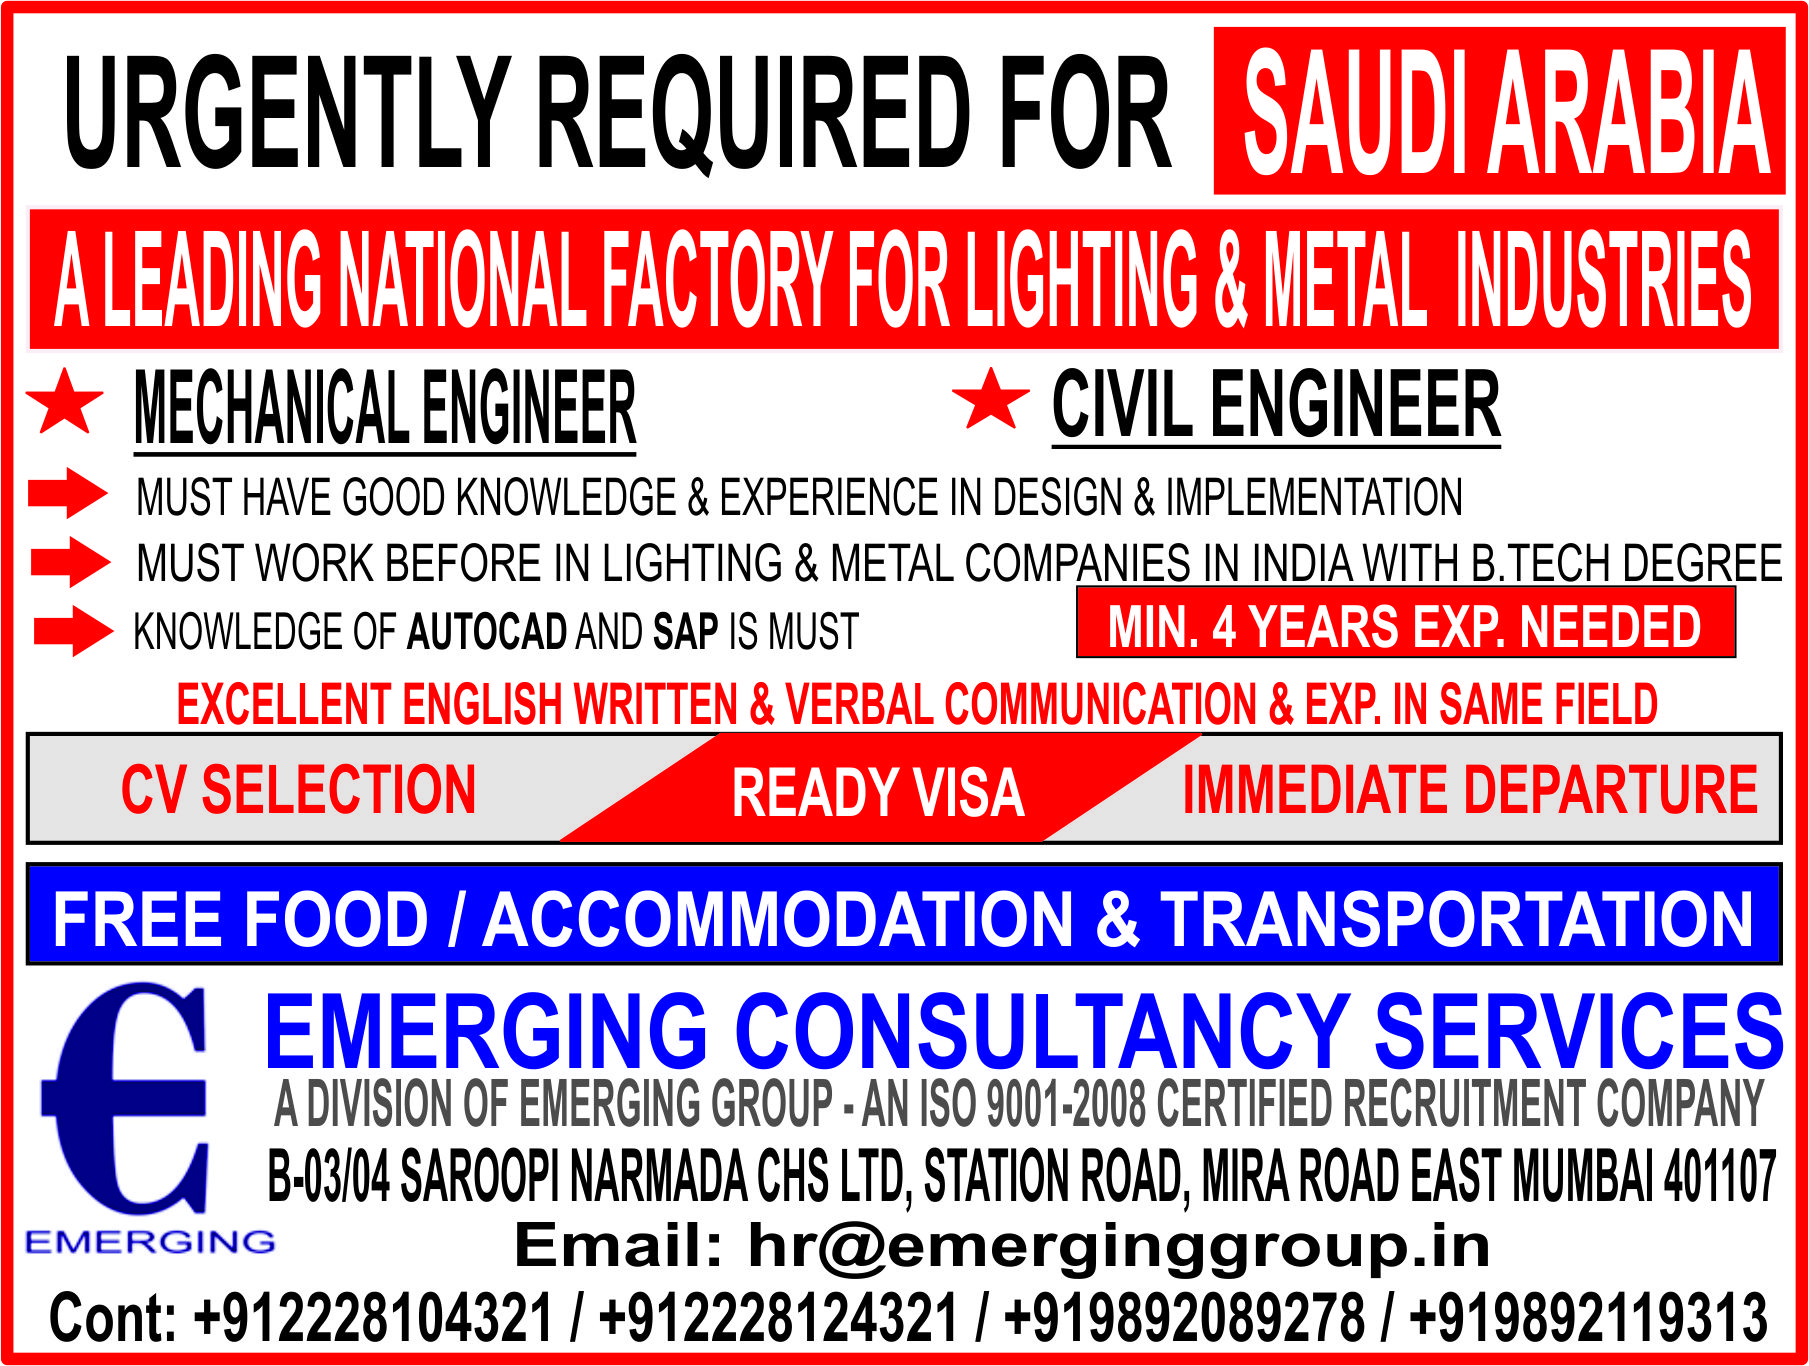 URGENT HIRING FOR A LEADING NATIONAL FACTORY FOR LIGHTING & METAL